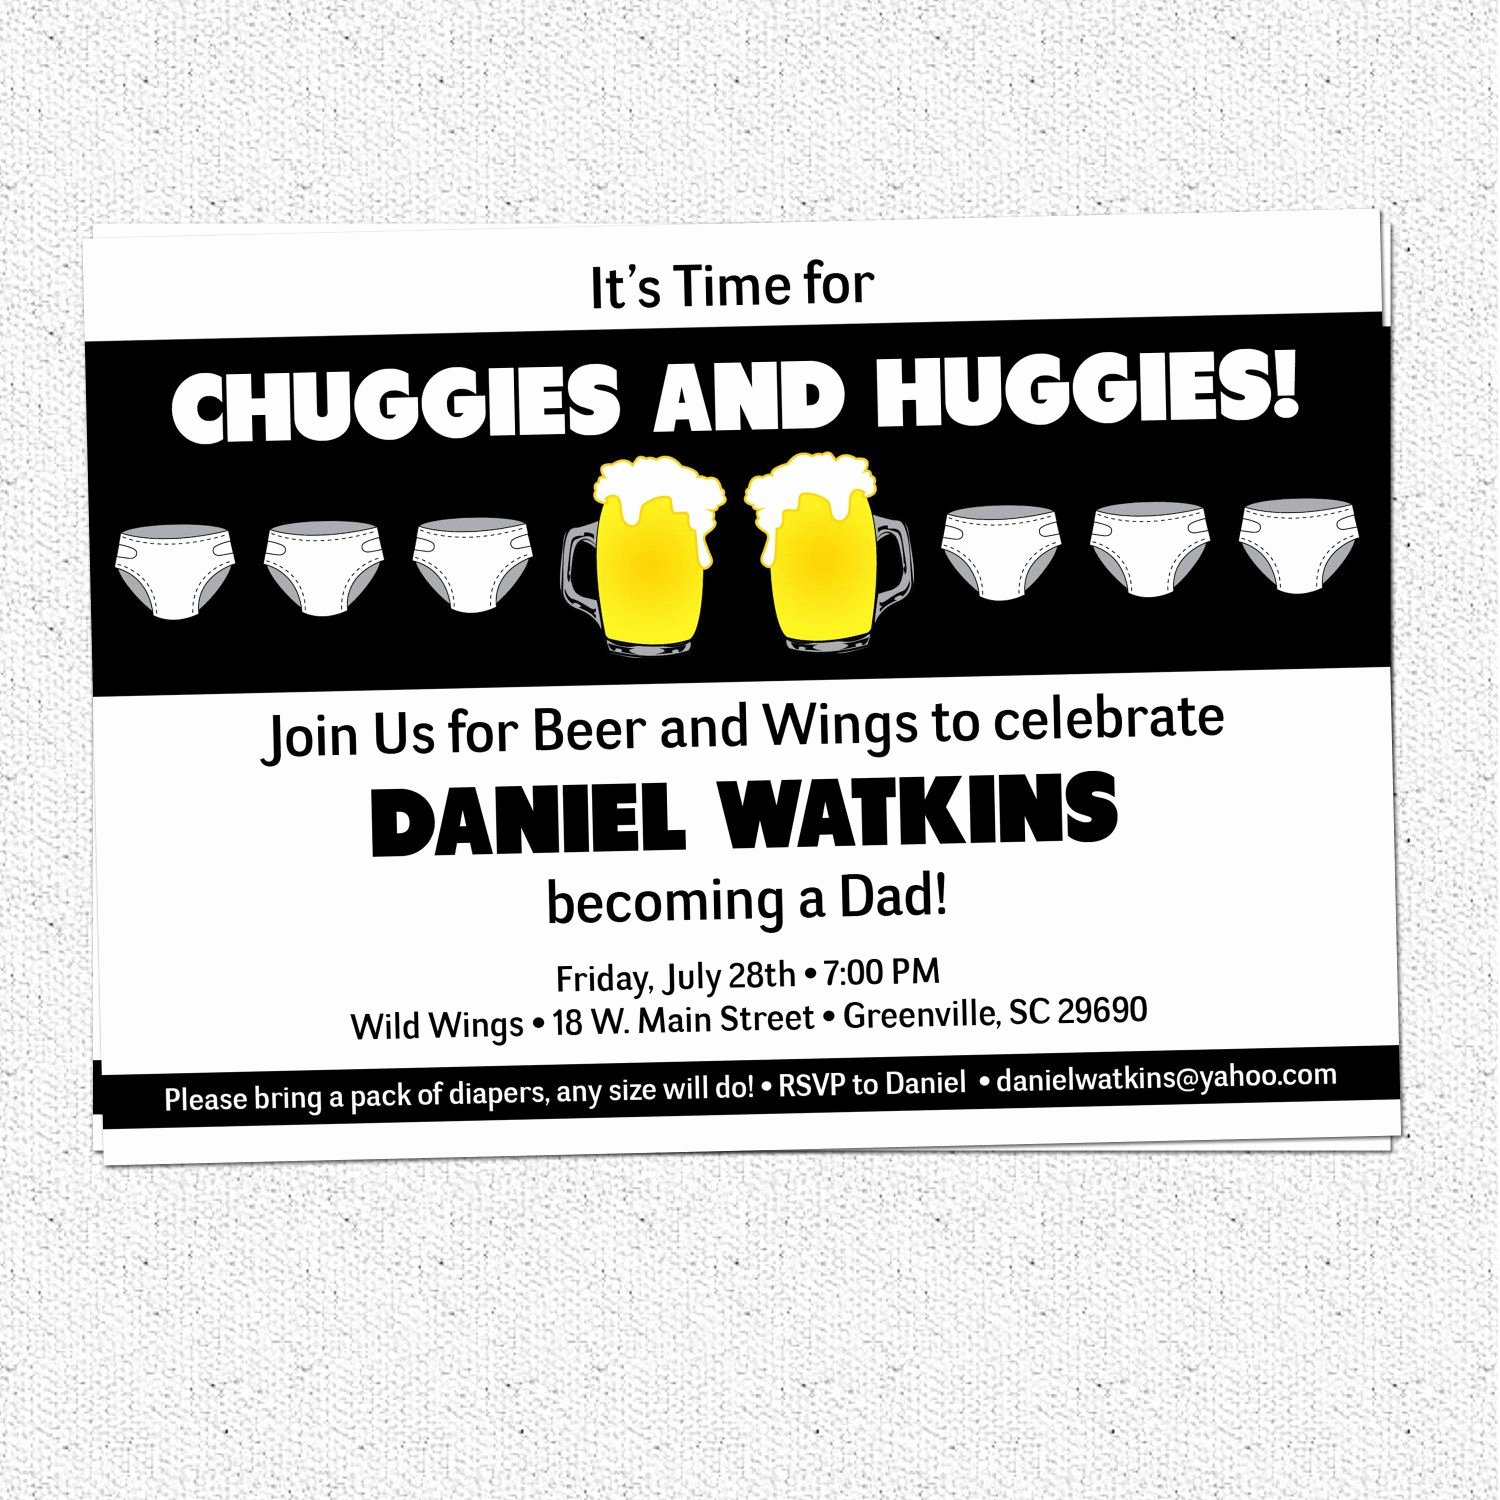 Diaper Party Invitation Template Lovely Chuggies and Huggies Beer and Diaper Party Invitation